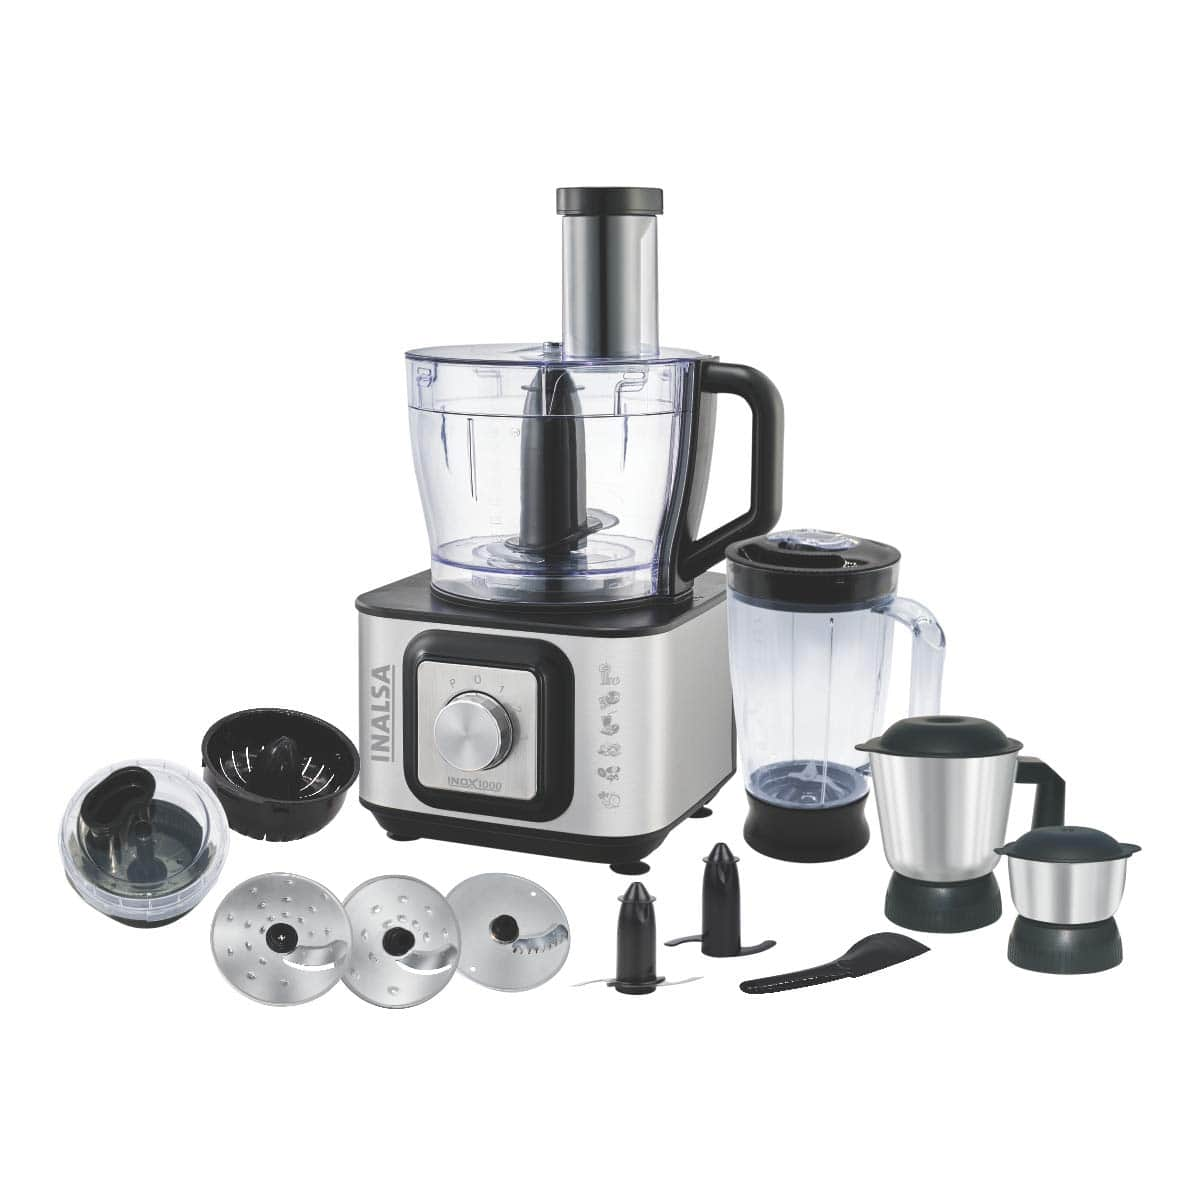 Roll over image to zoom in Inalsa Food Processor